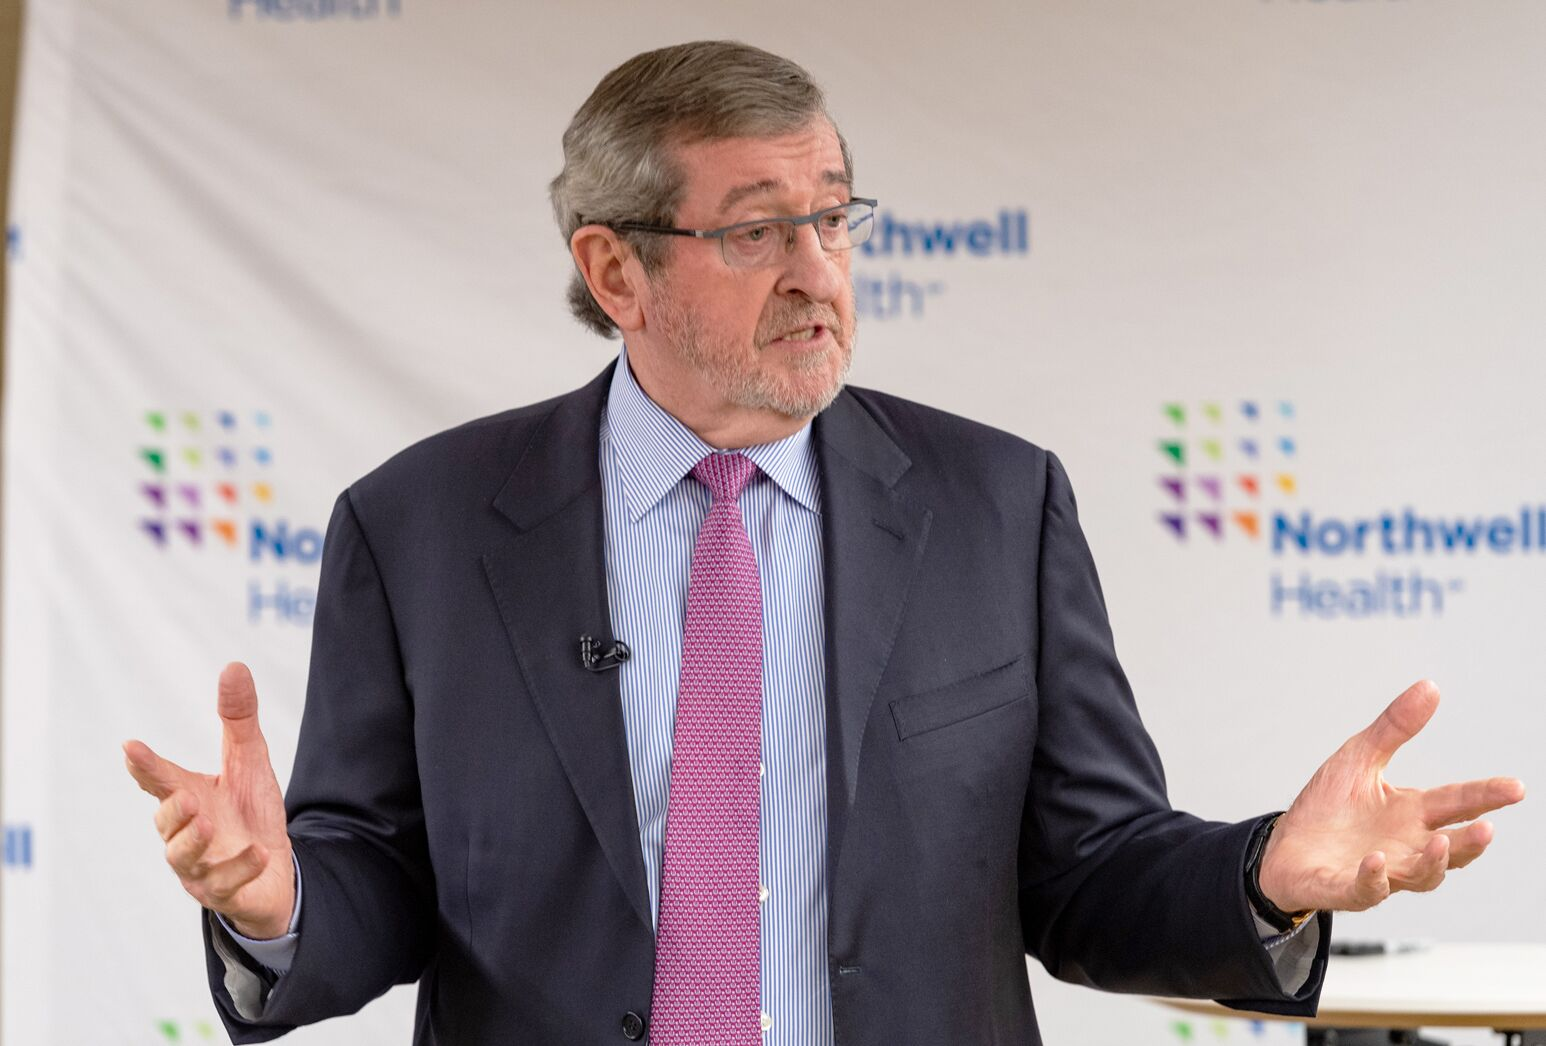 Michael Dowling speaks about the health care in 2019 at an event.